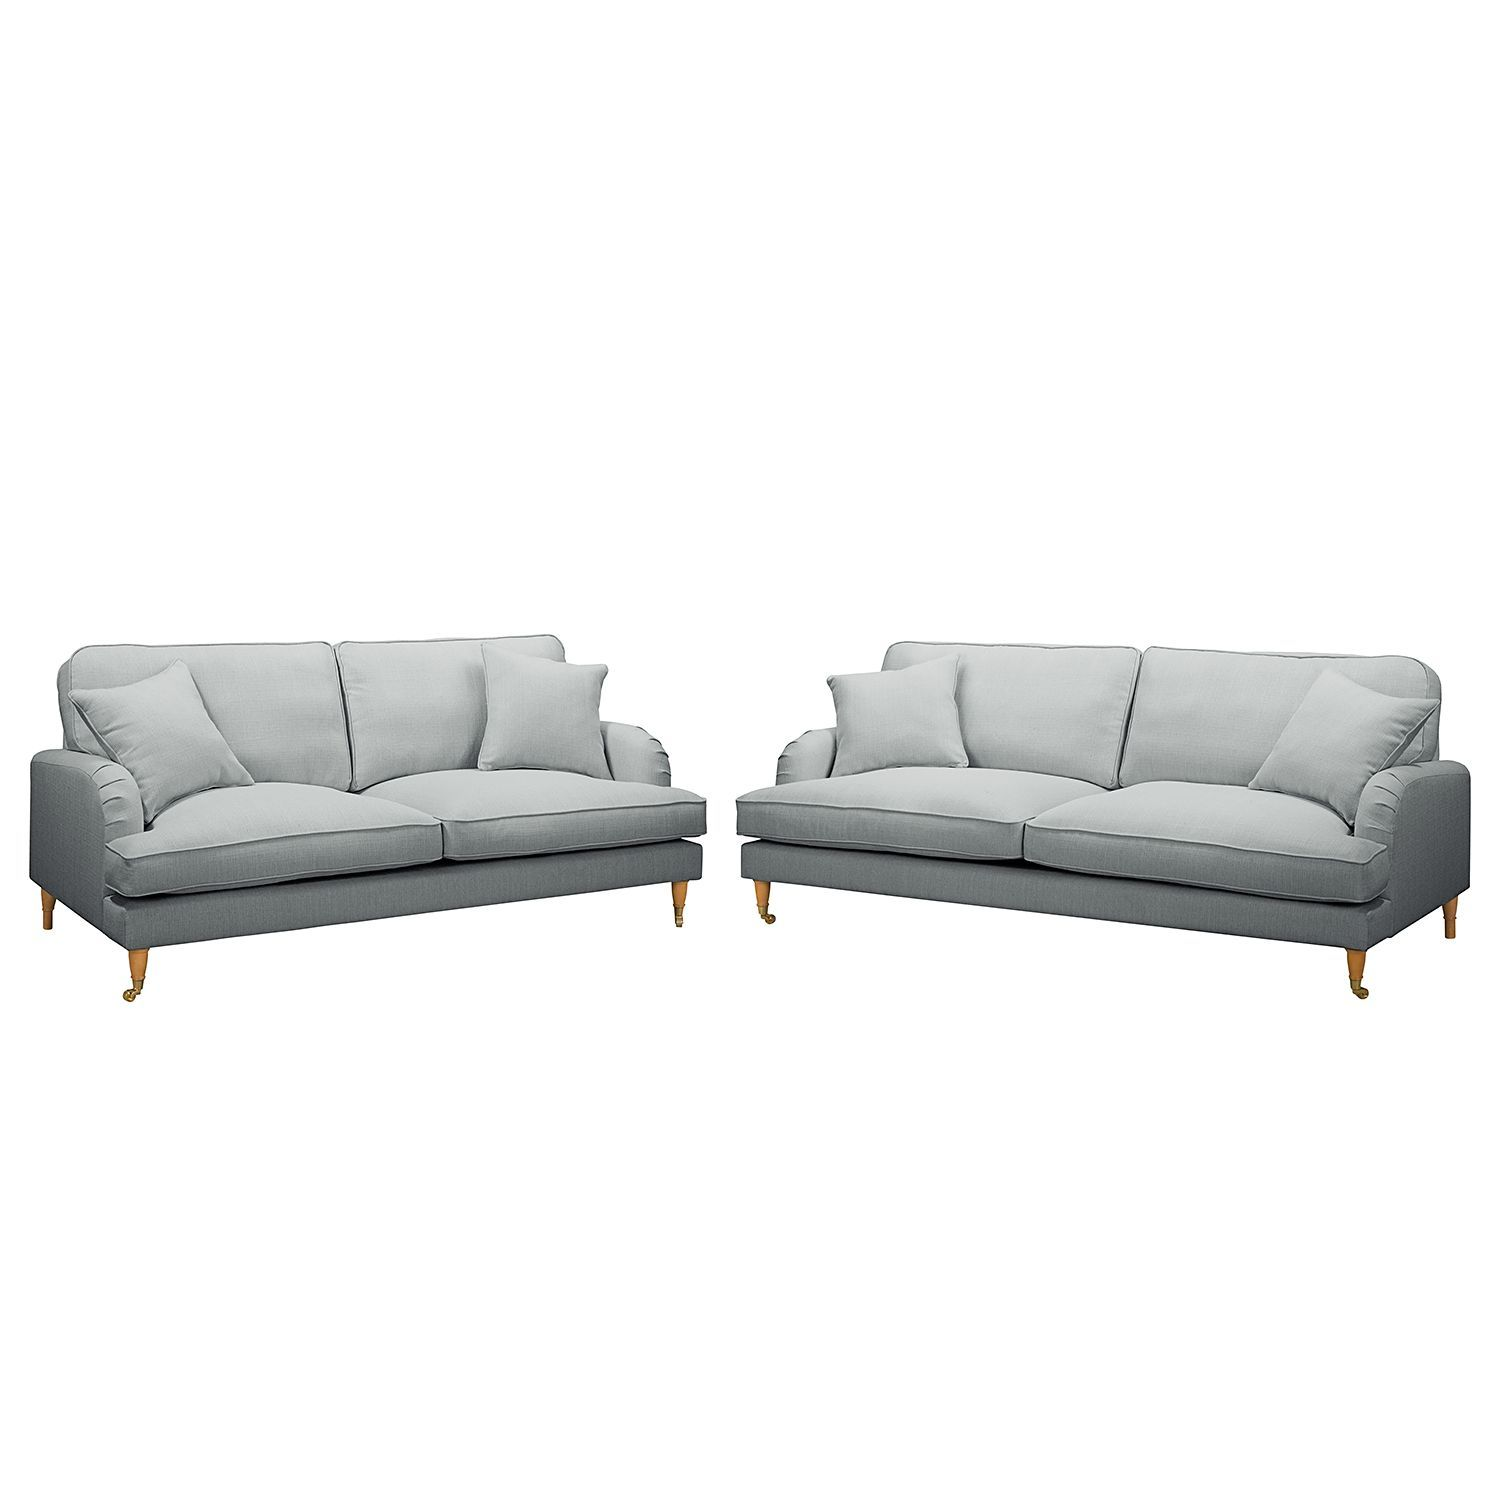 Sofa Günstig Home24 Polstergarnitur Bethania Ii 3 2 In 2019 Sofas Home